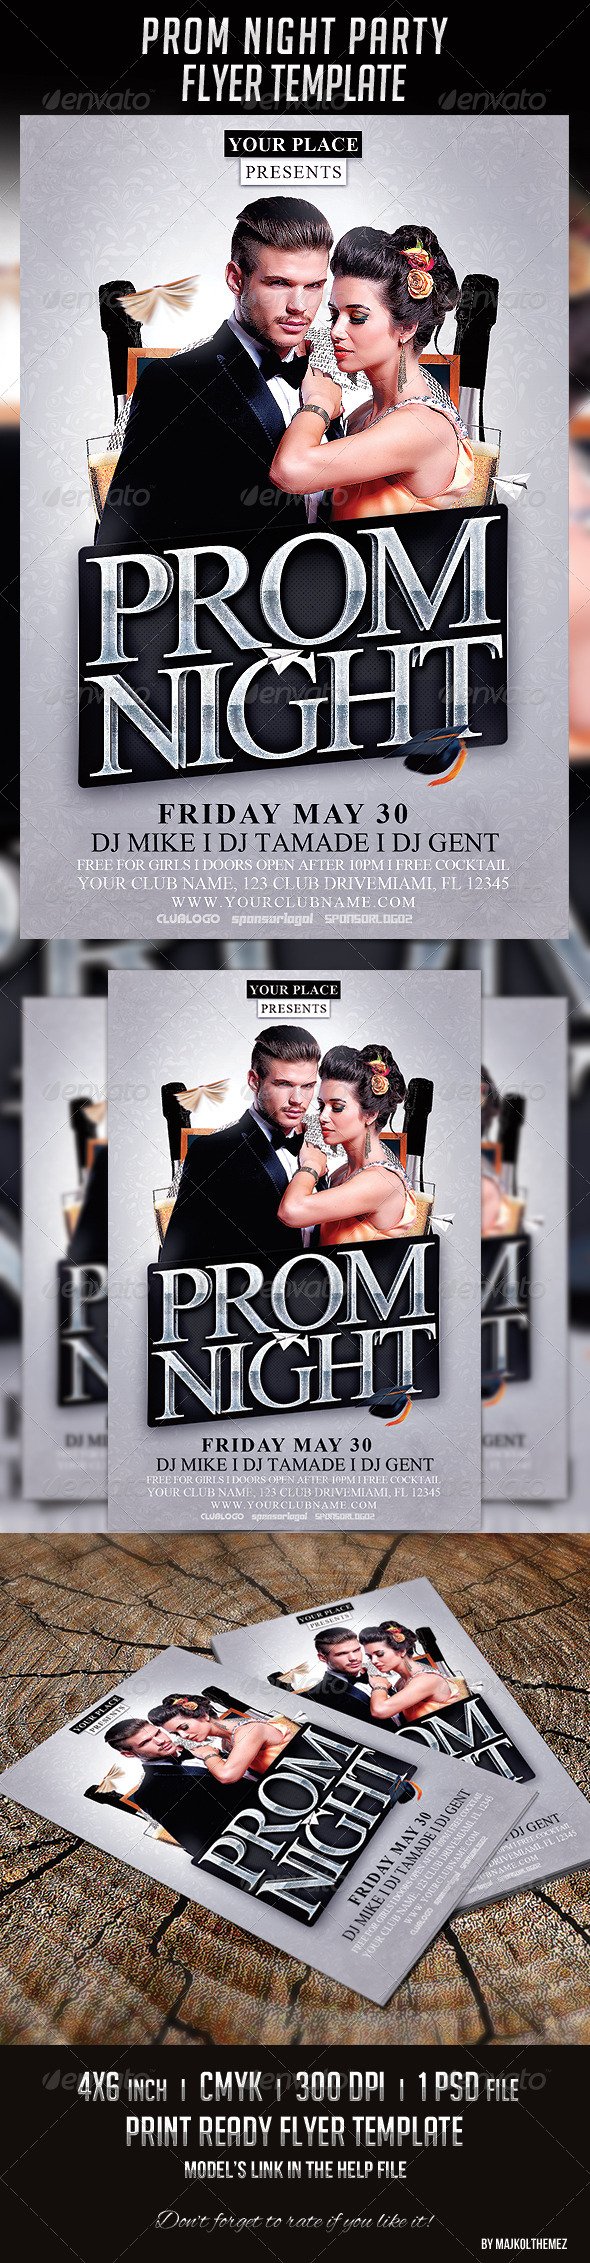 Prom Night Party Flyer Template - Events Flyers